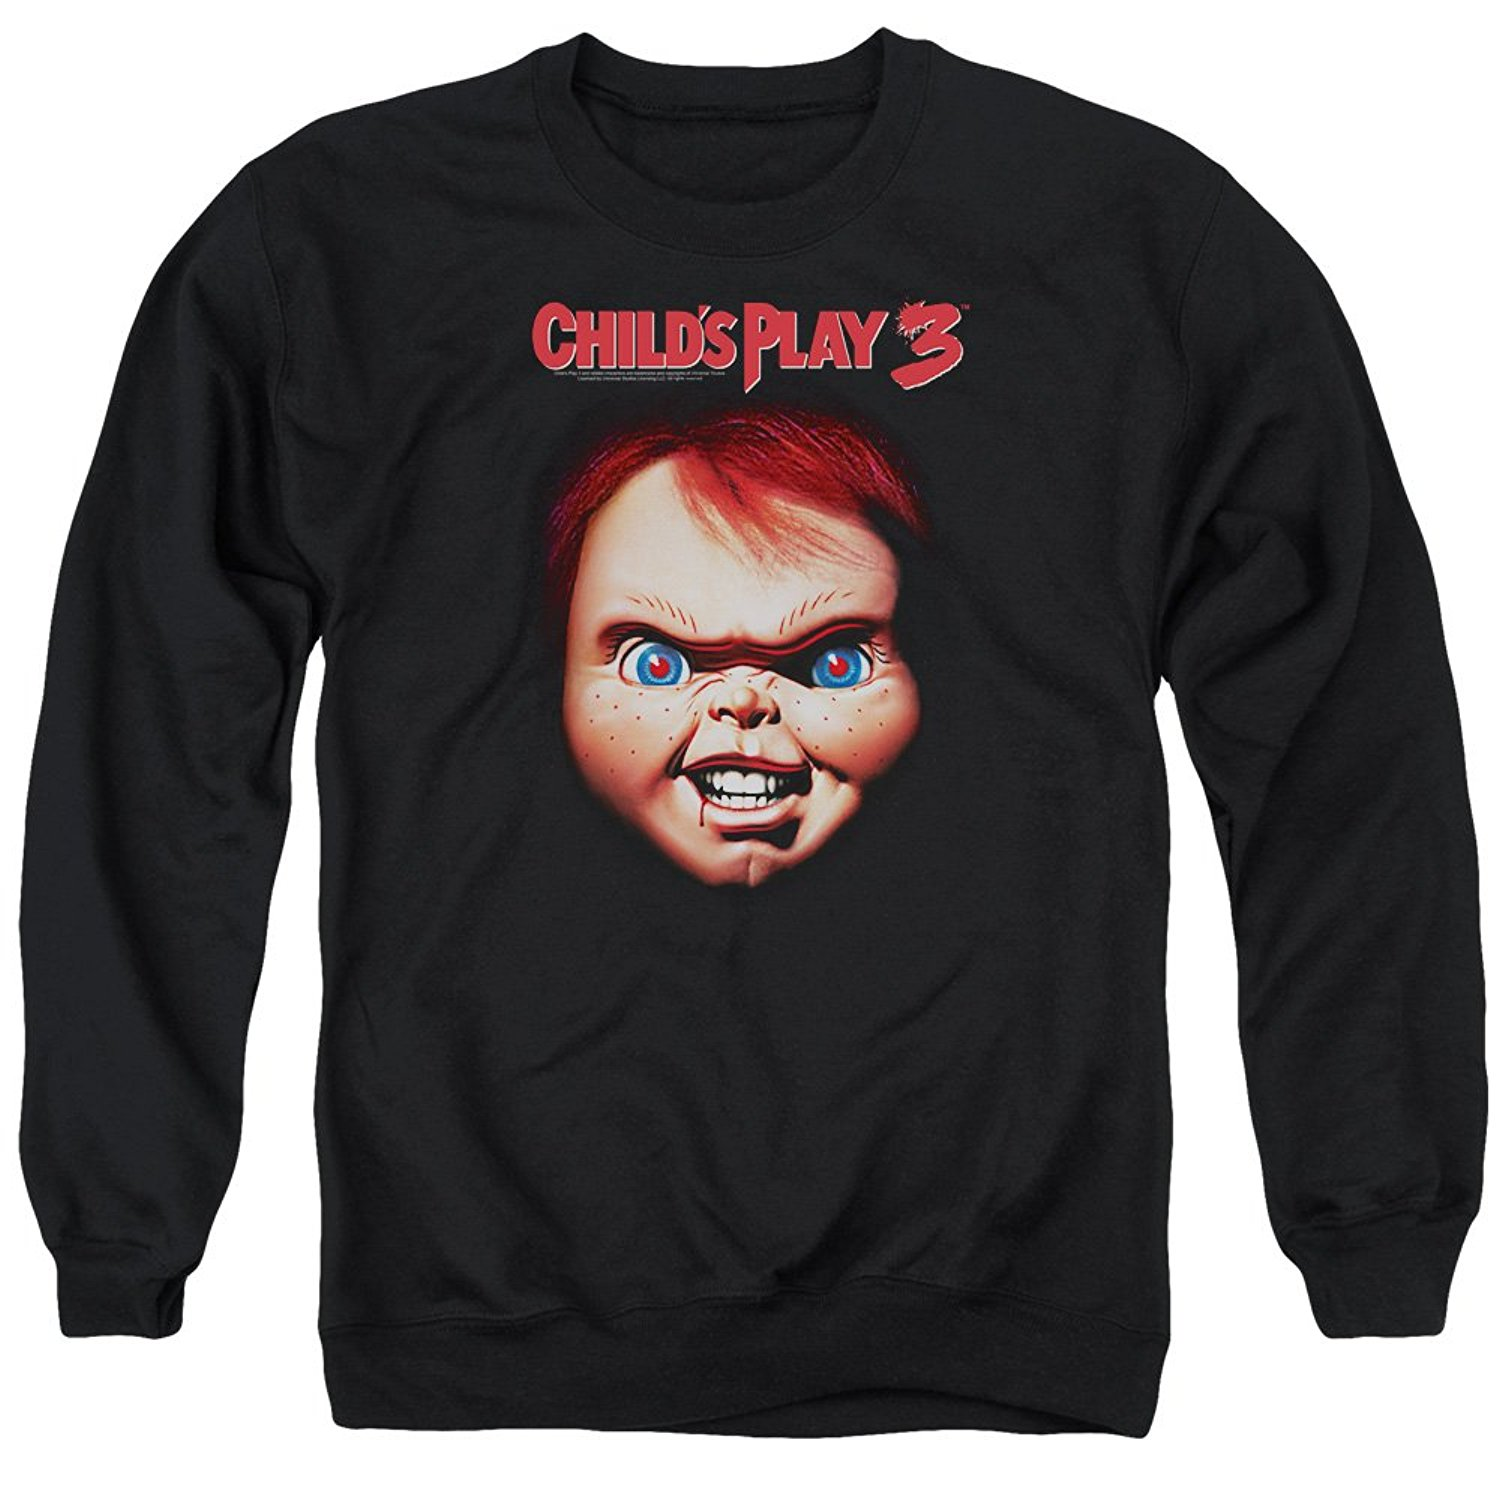 c7d99cb0 Cheap Childs Play Chucky, find Childs Play Chucky deals on line at ...